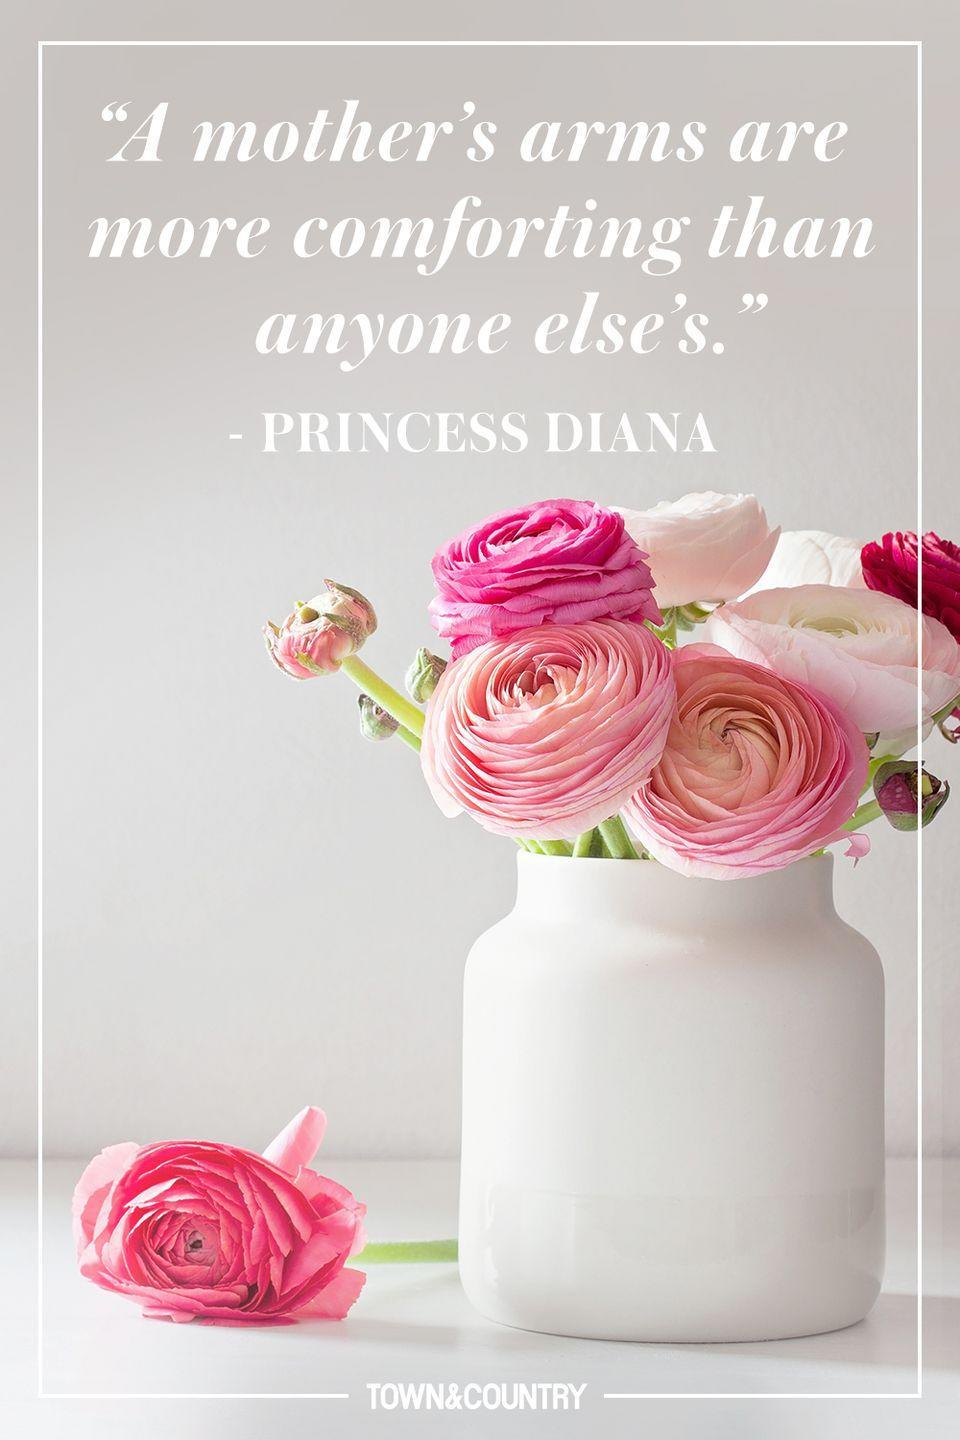 """<p>""""A mother's arms are more comforting than anyone else's.""""</p><p>- Princess Diana</p>"""